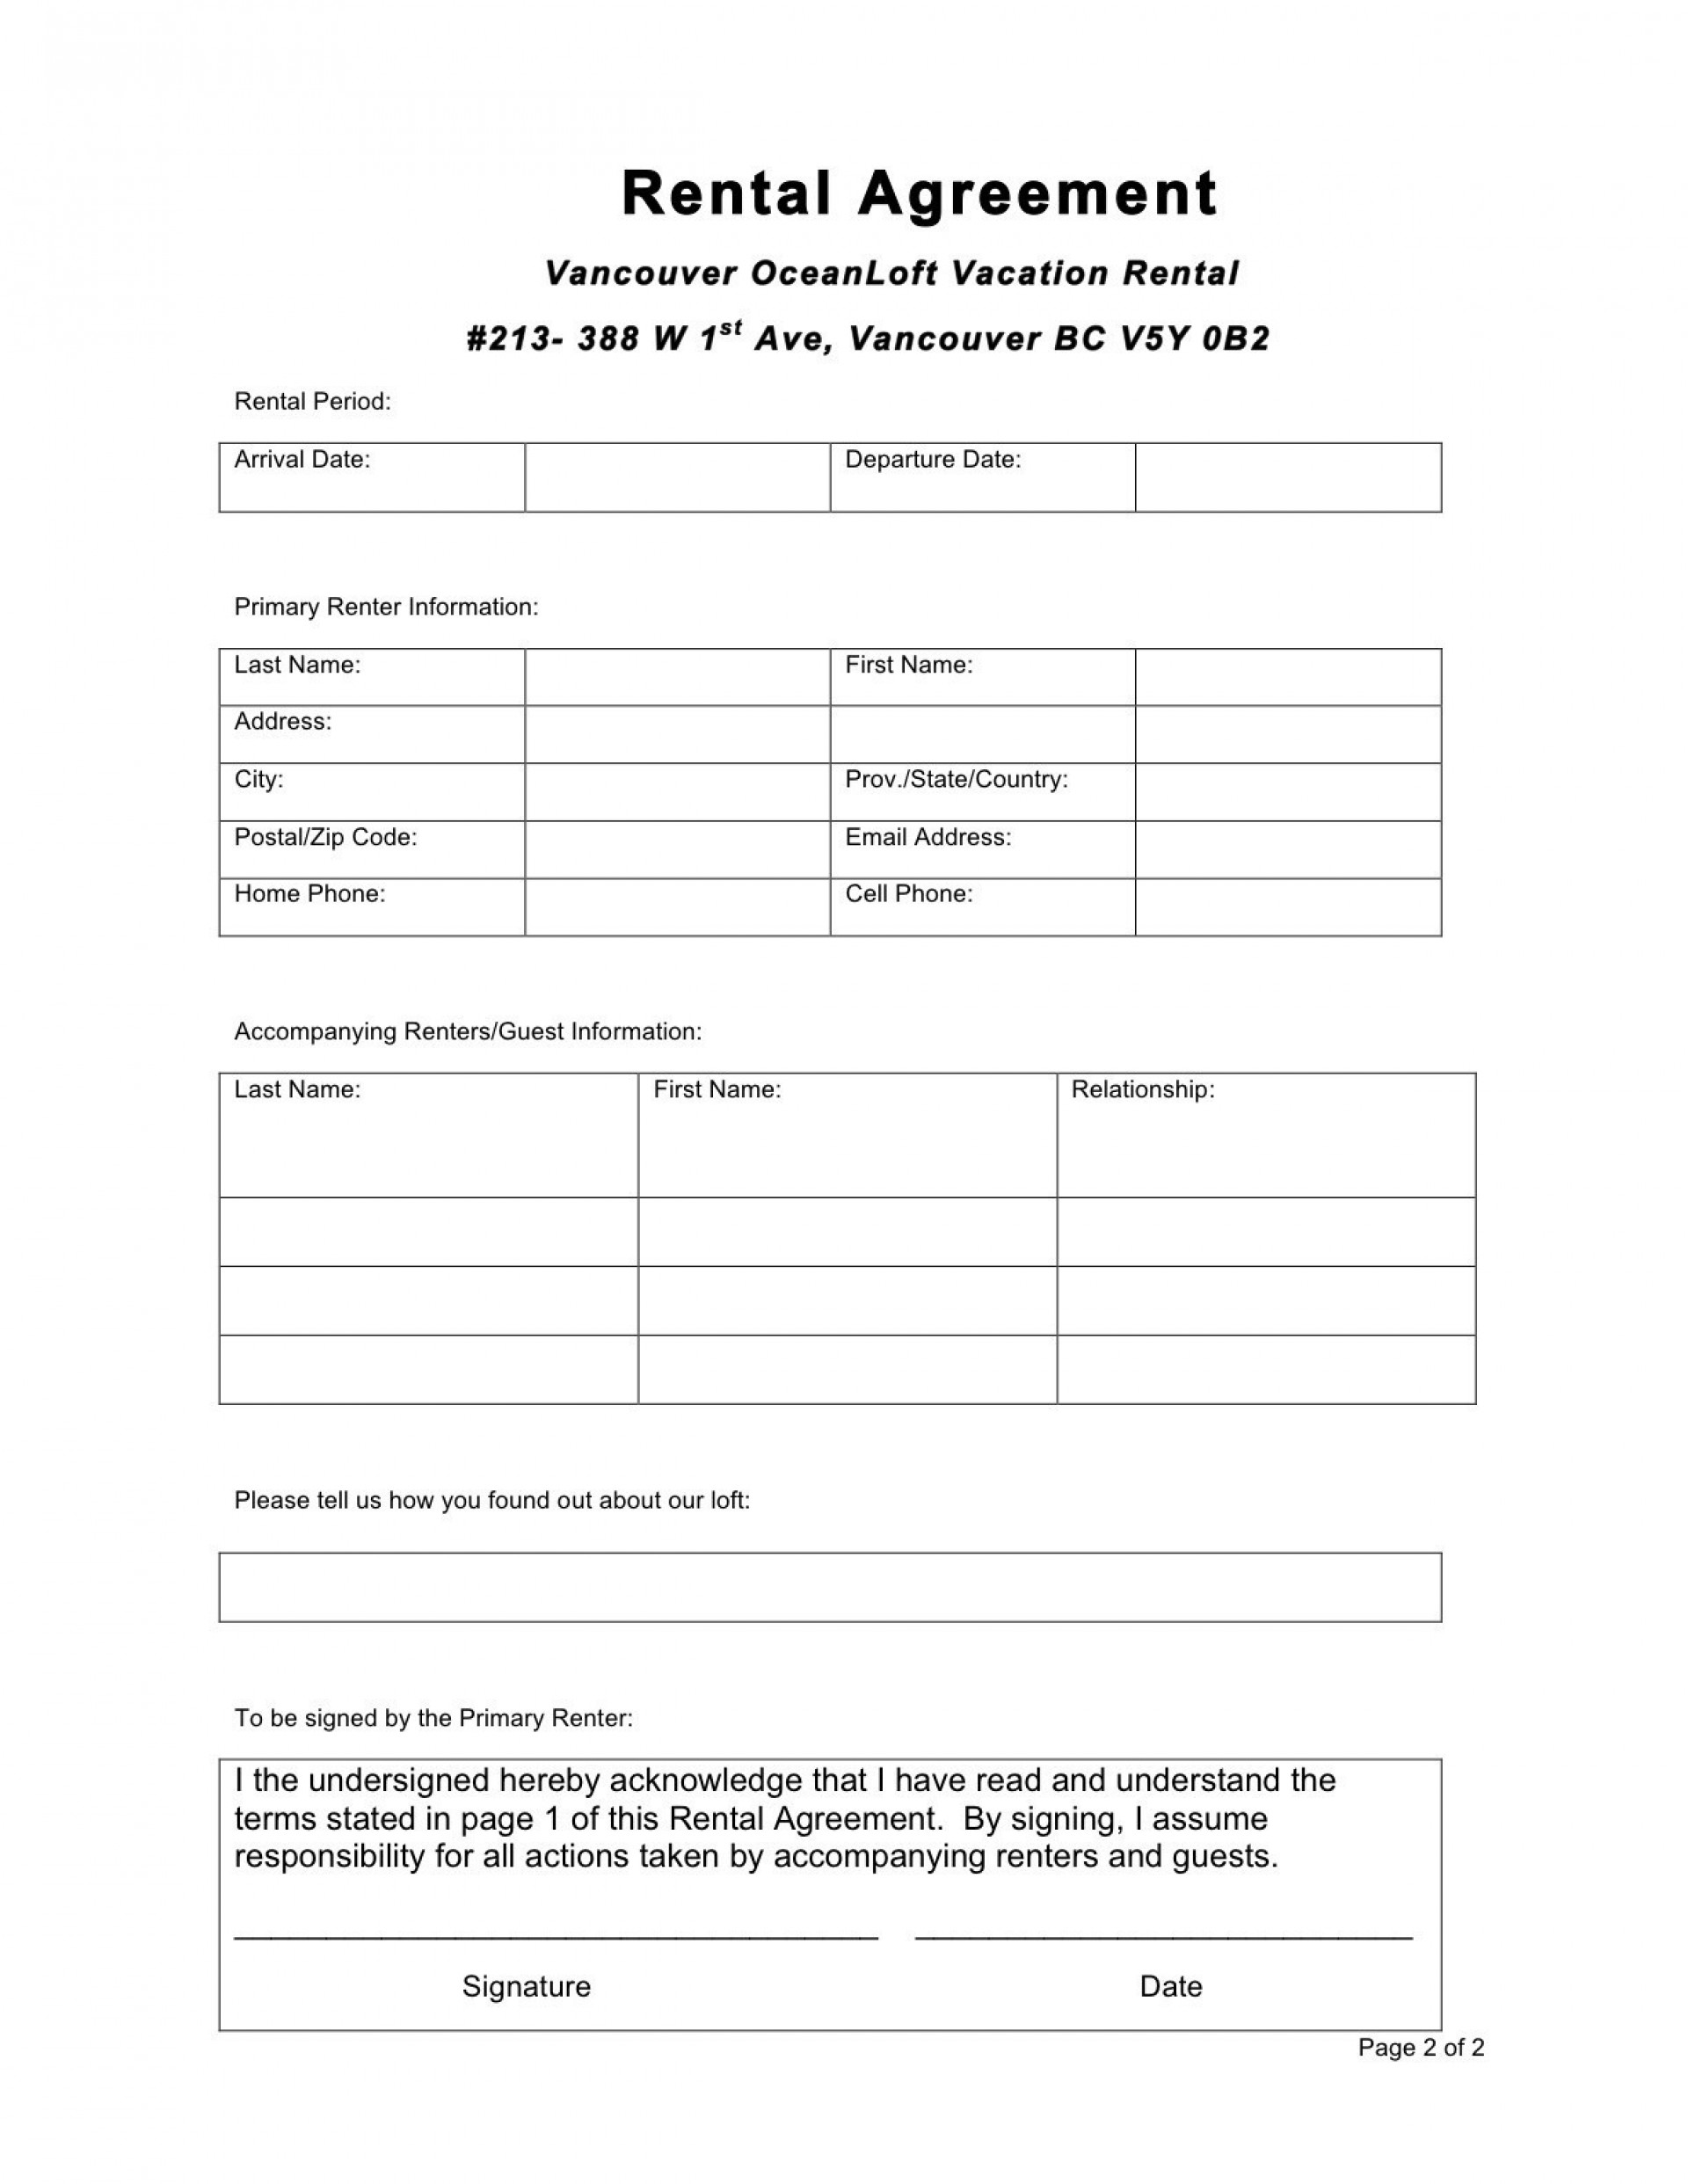 014 Rental Agreement Oregon Elegant Best Printable Application Residential Lease 123helpme Free Essay Number Invite Code Unique To Find Your And Enter It Below 1920